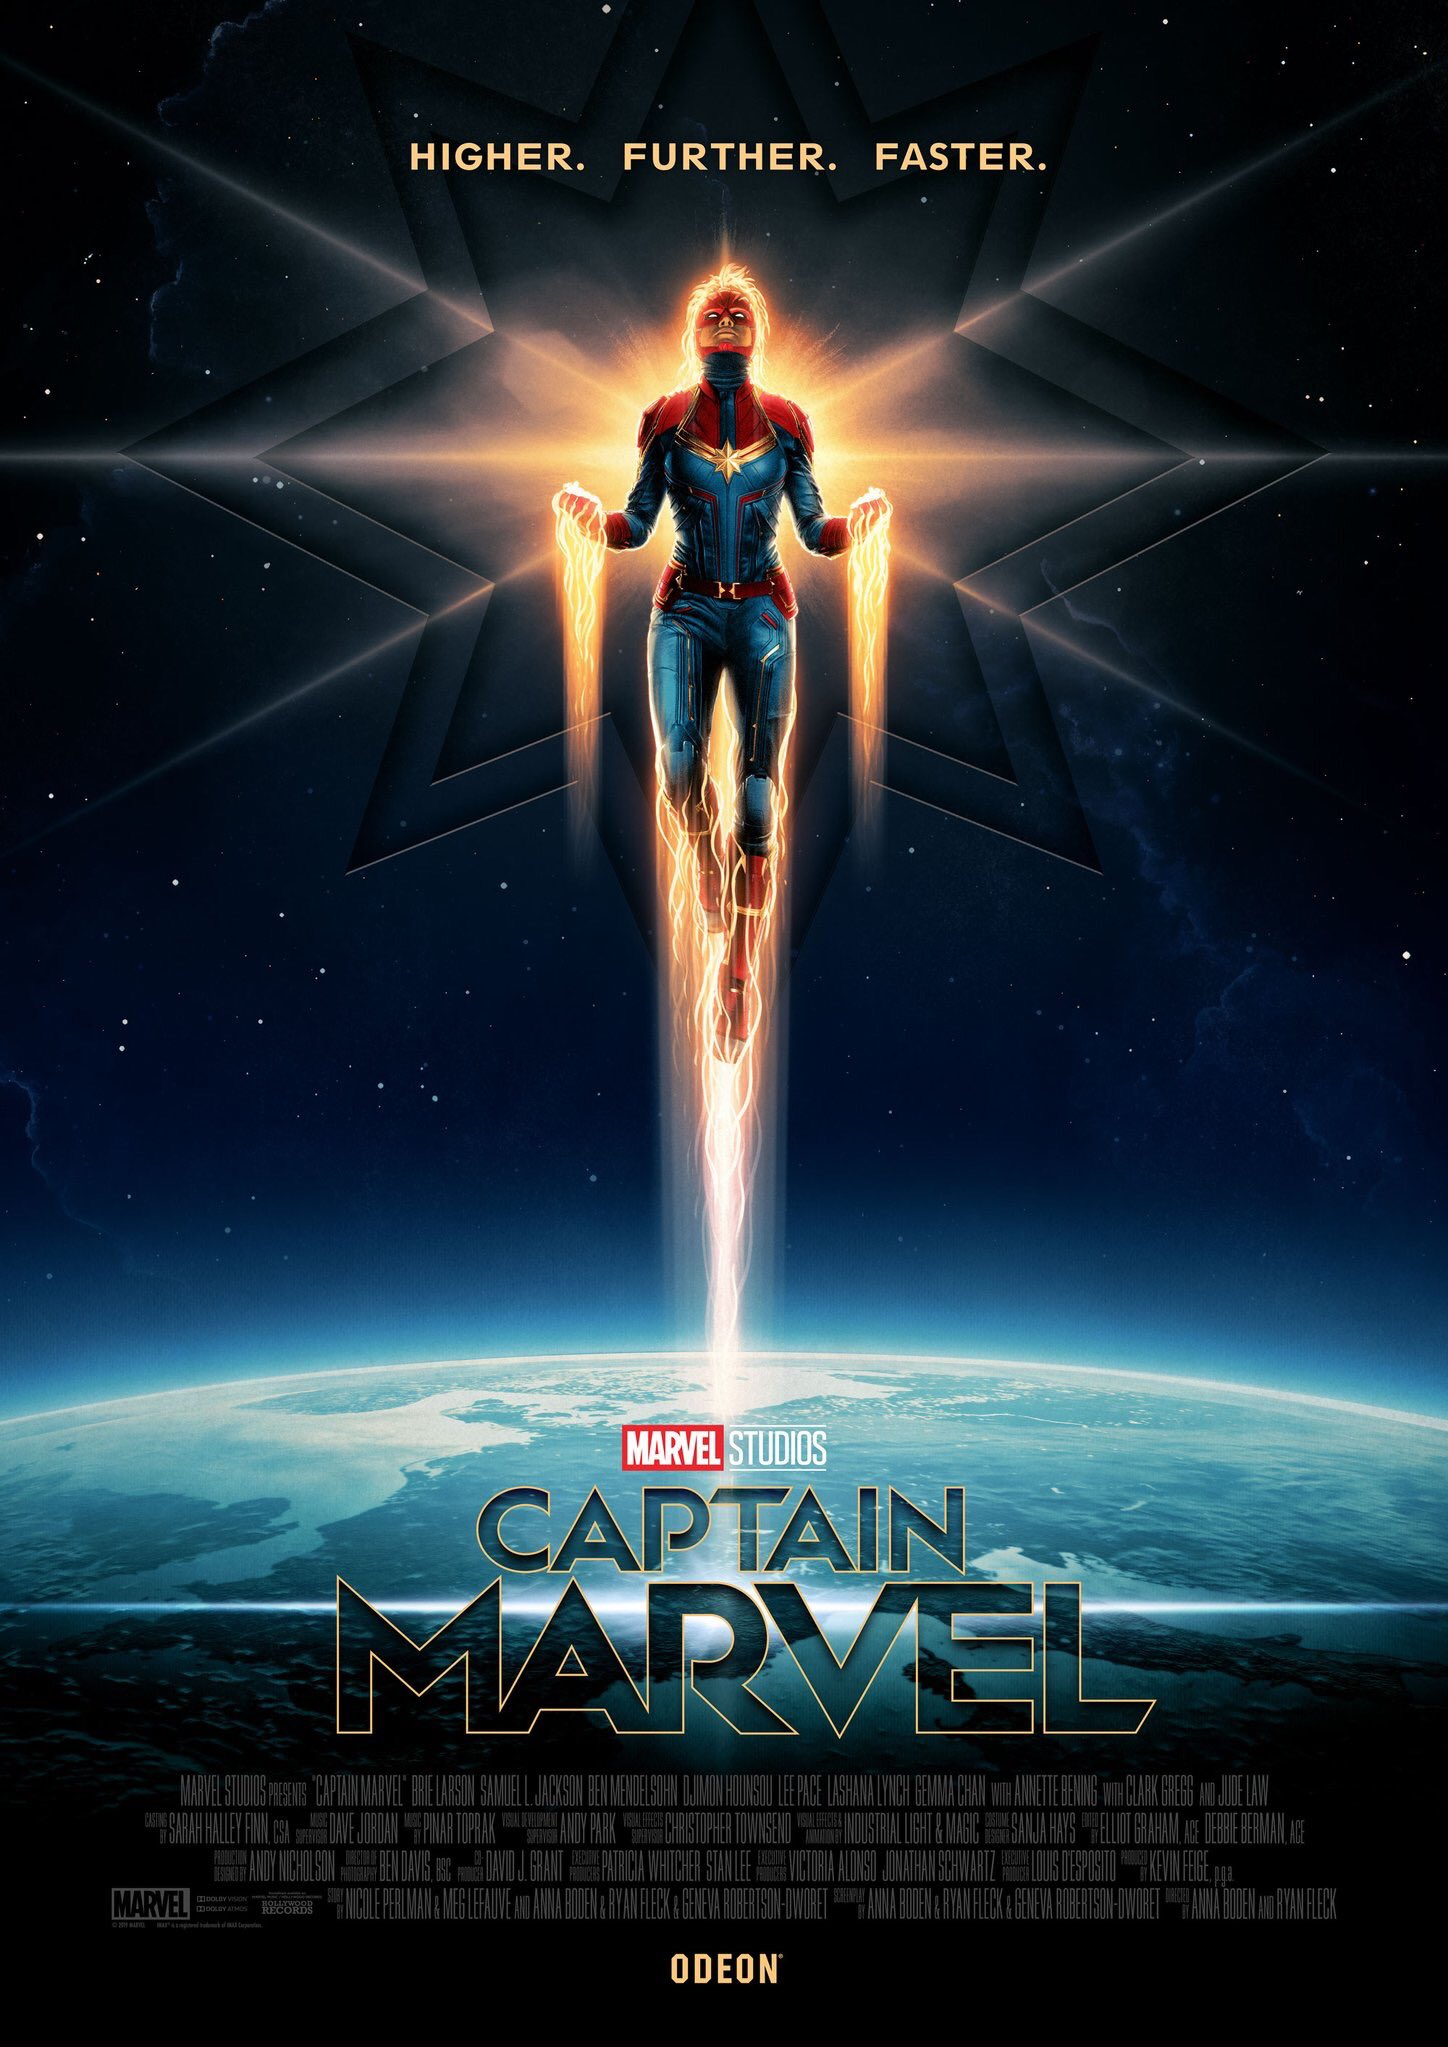 Captain Marvel Goes Higher, Further, Faster In New Poster and Images